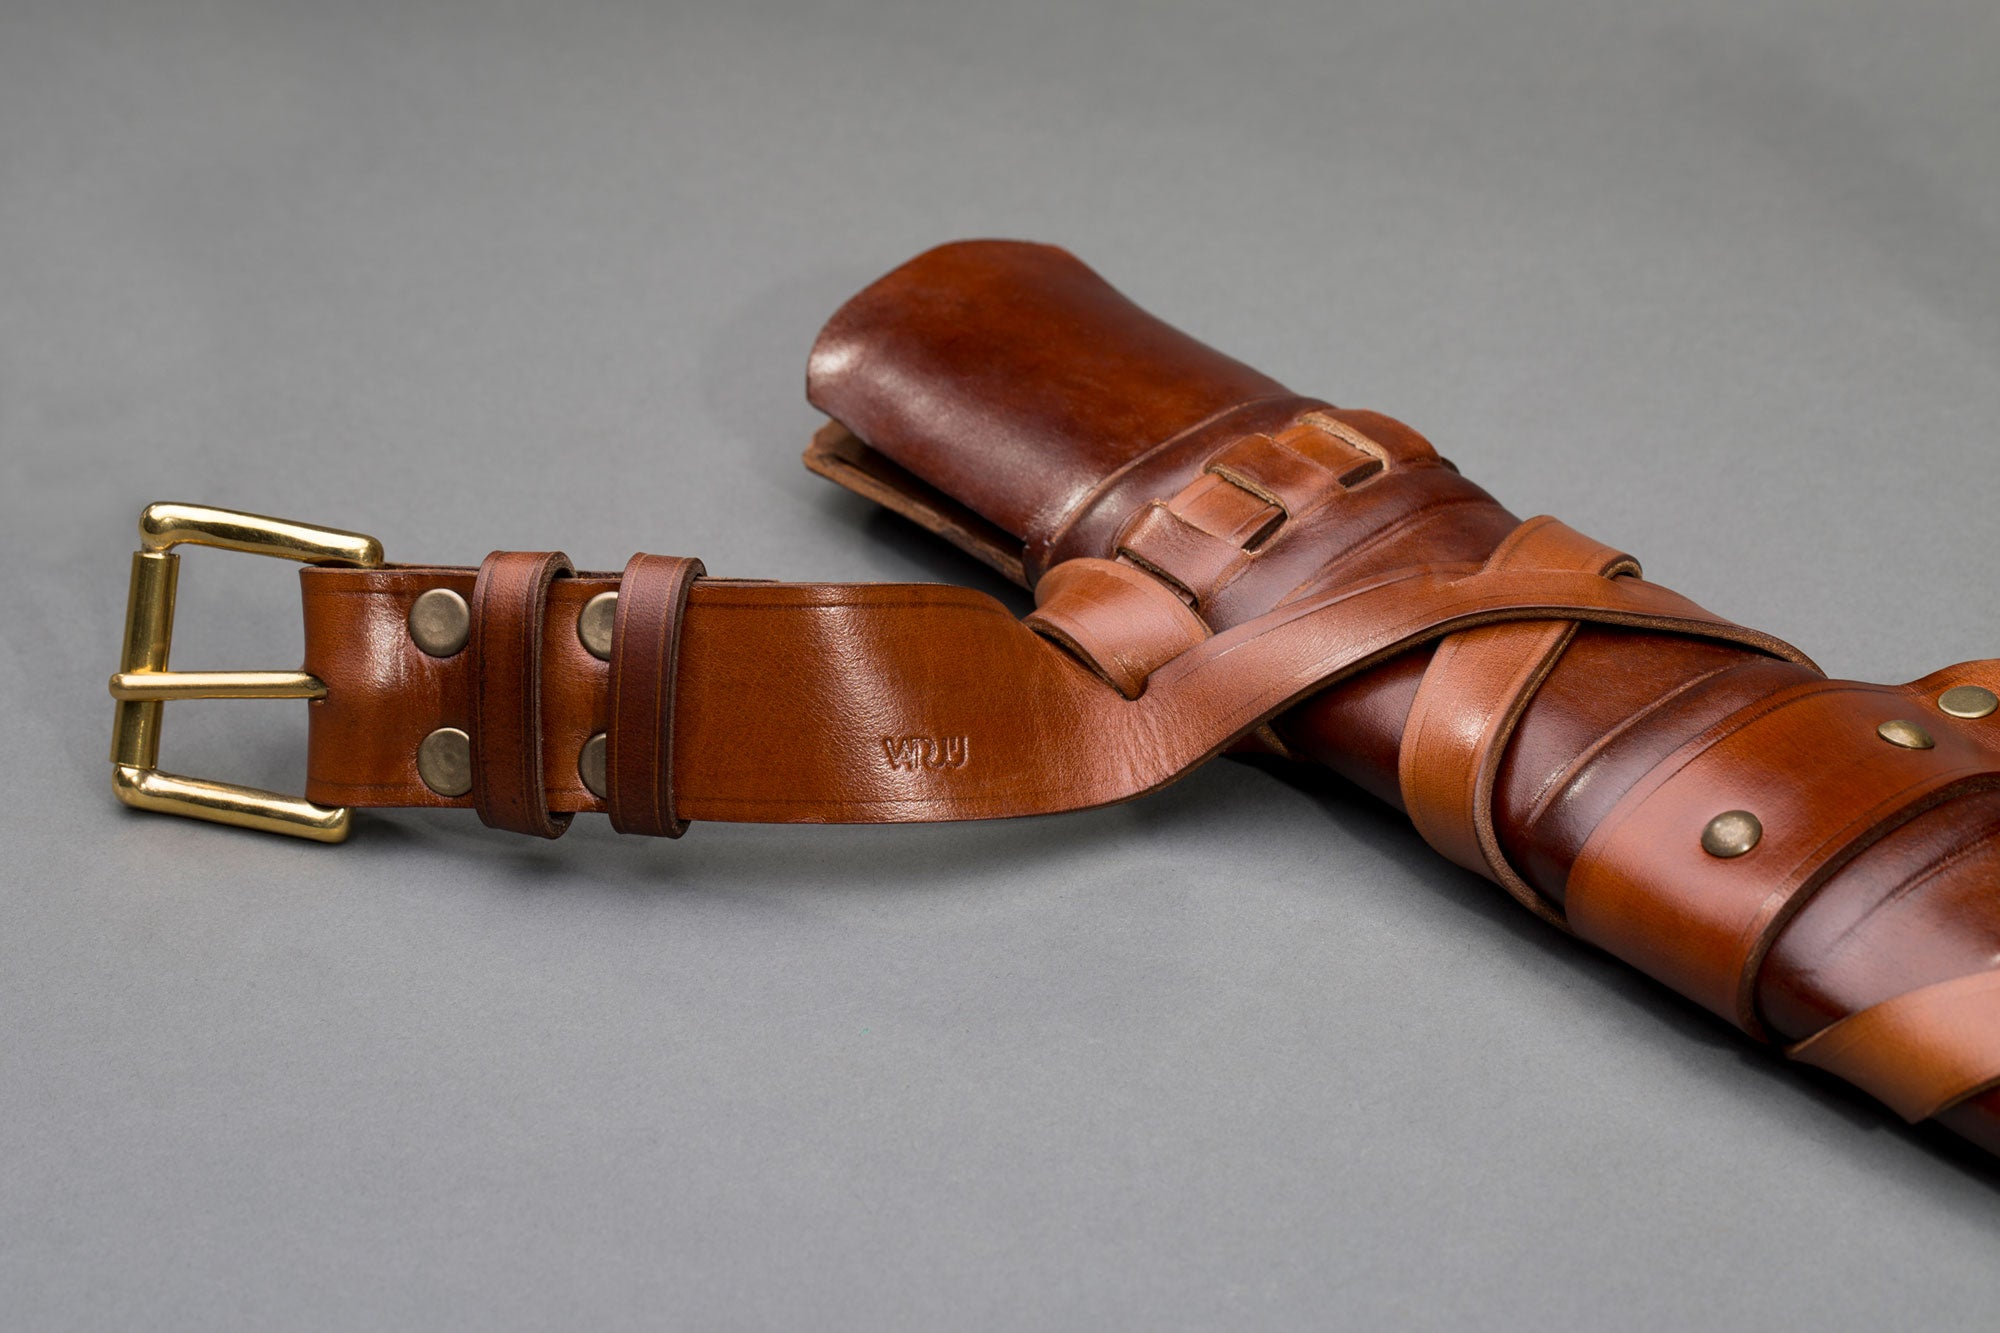 Authentic Feder Scabbard Sheath